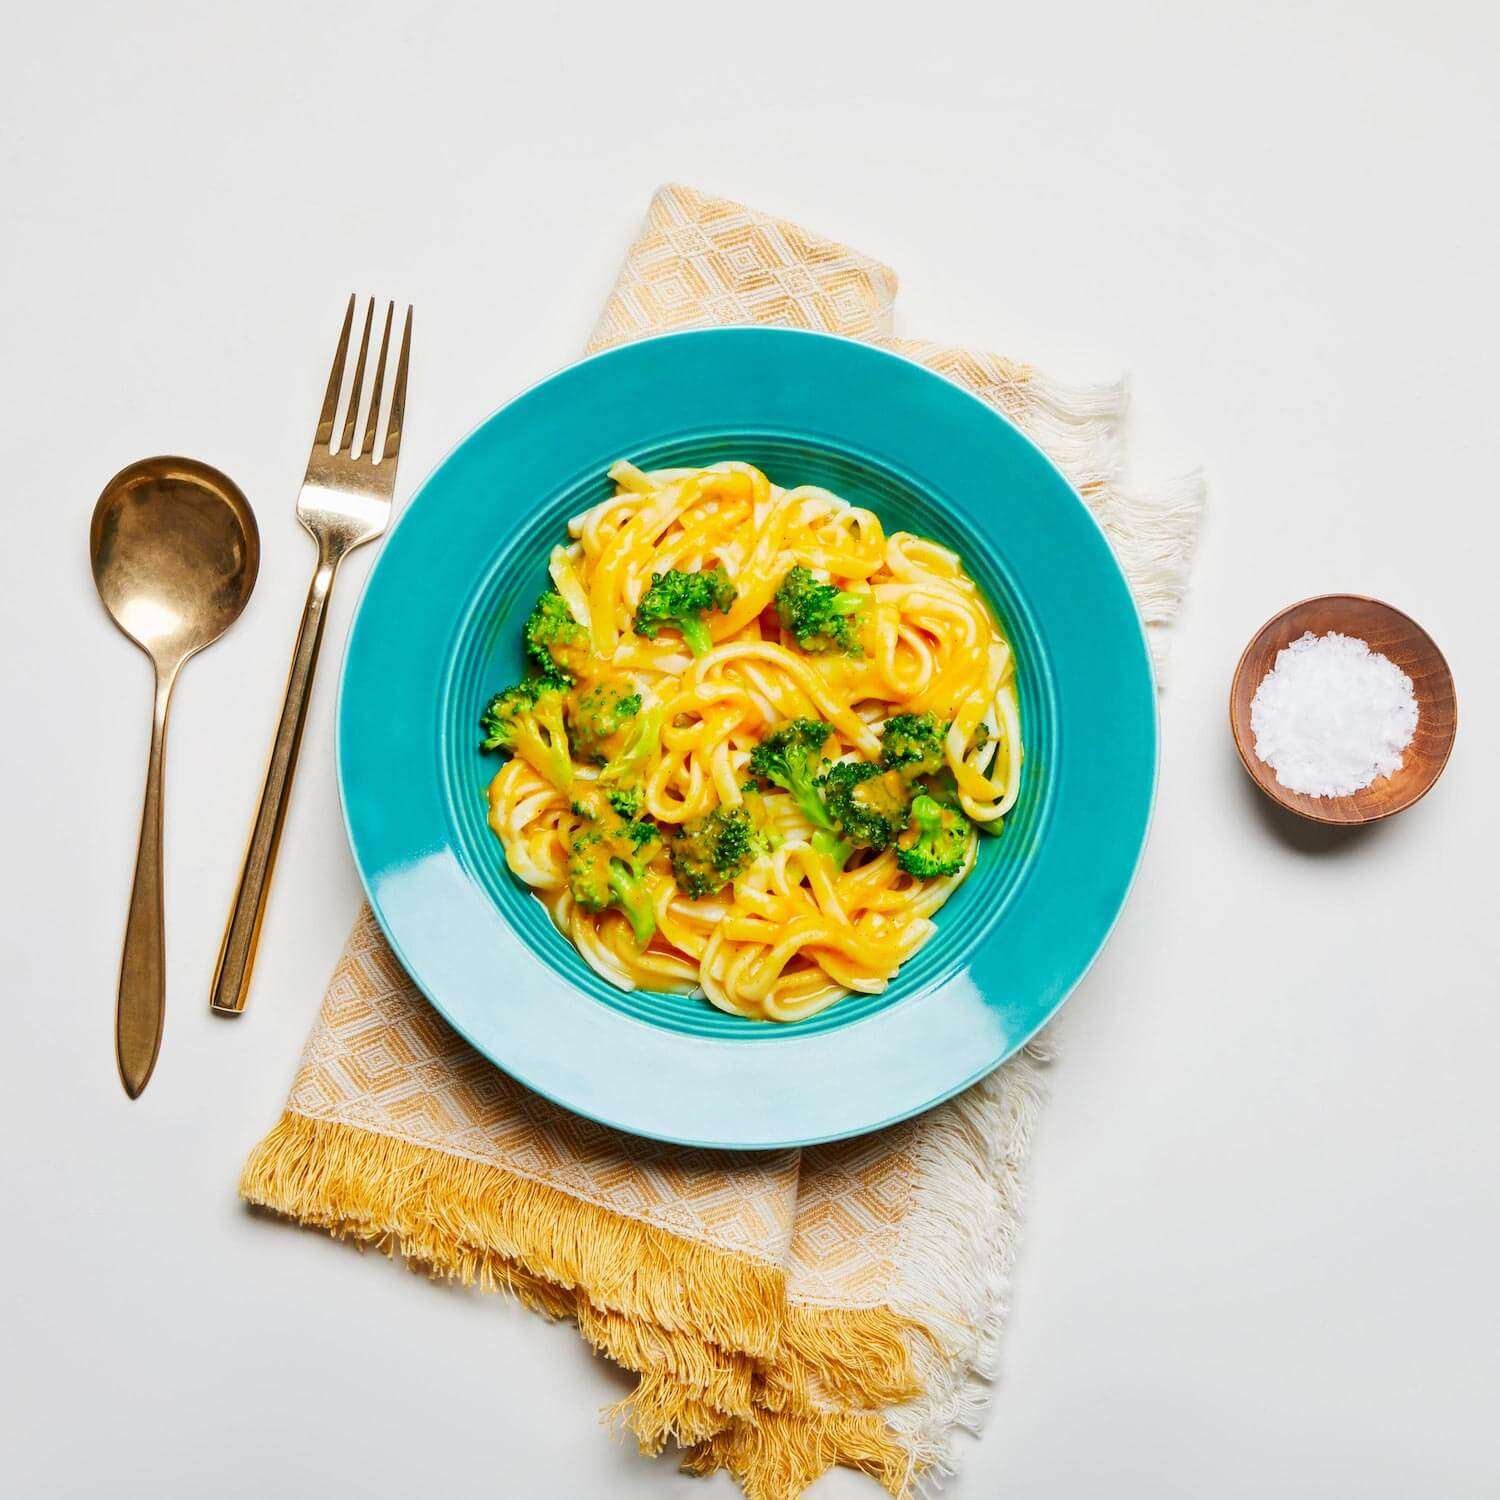 Creamy butternut squash noodles on a plate with a napkin.